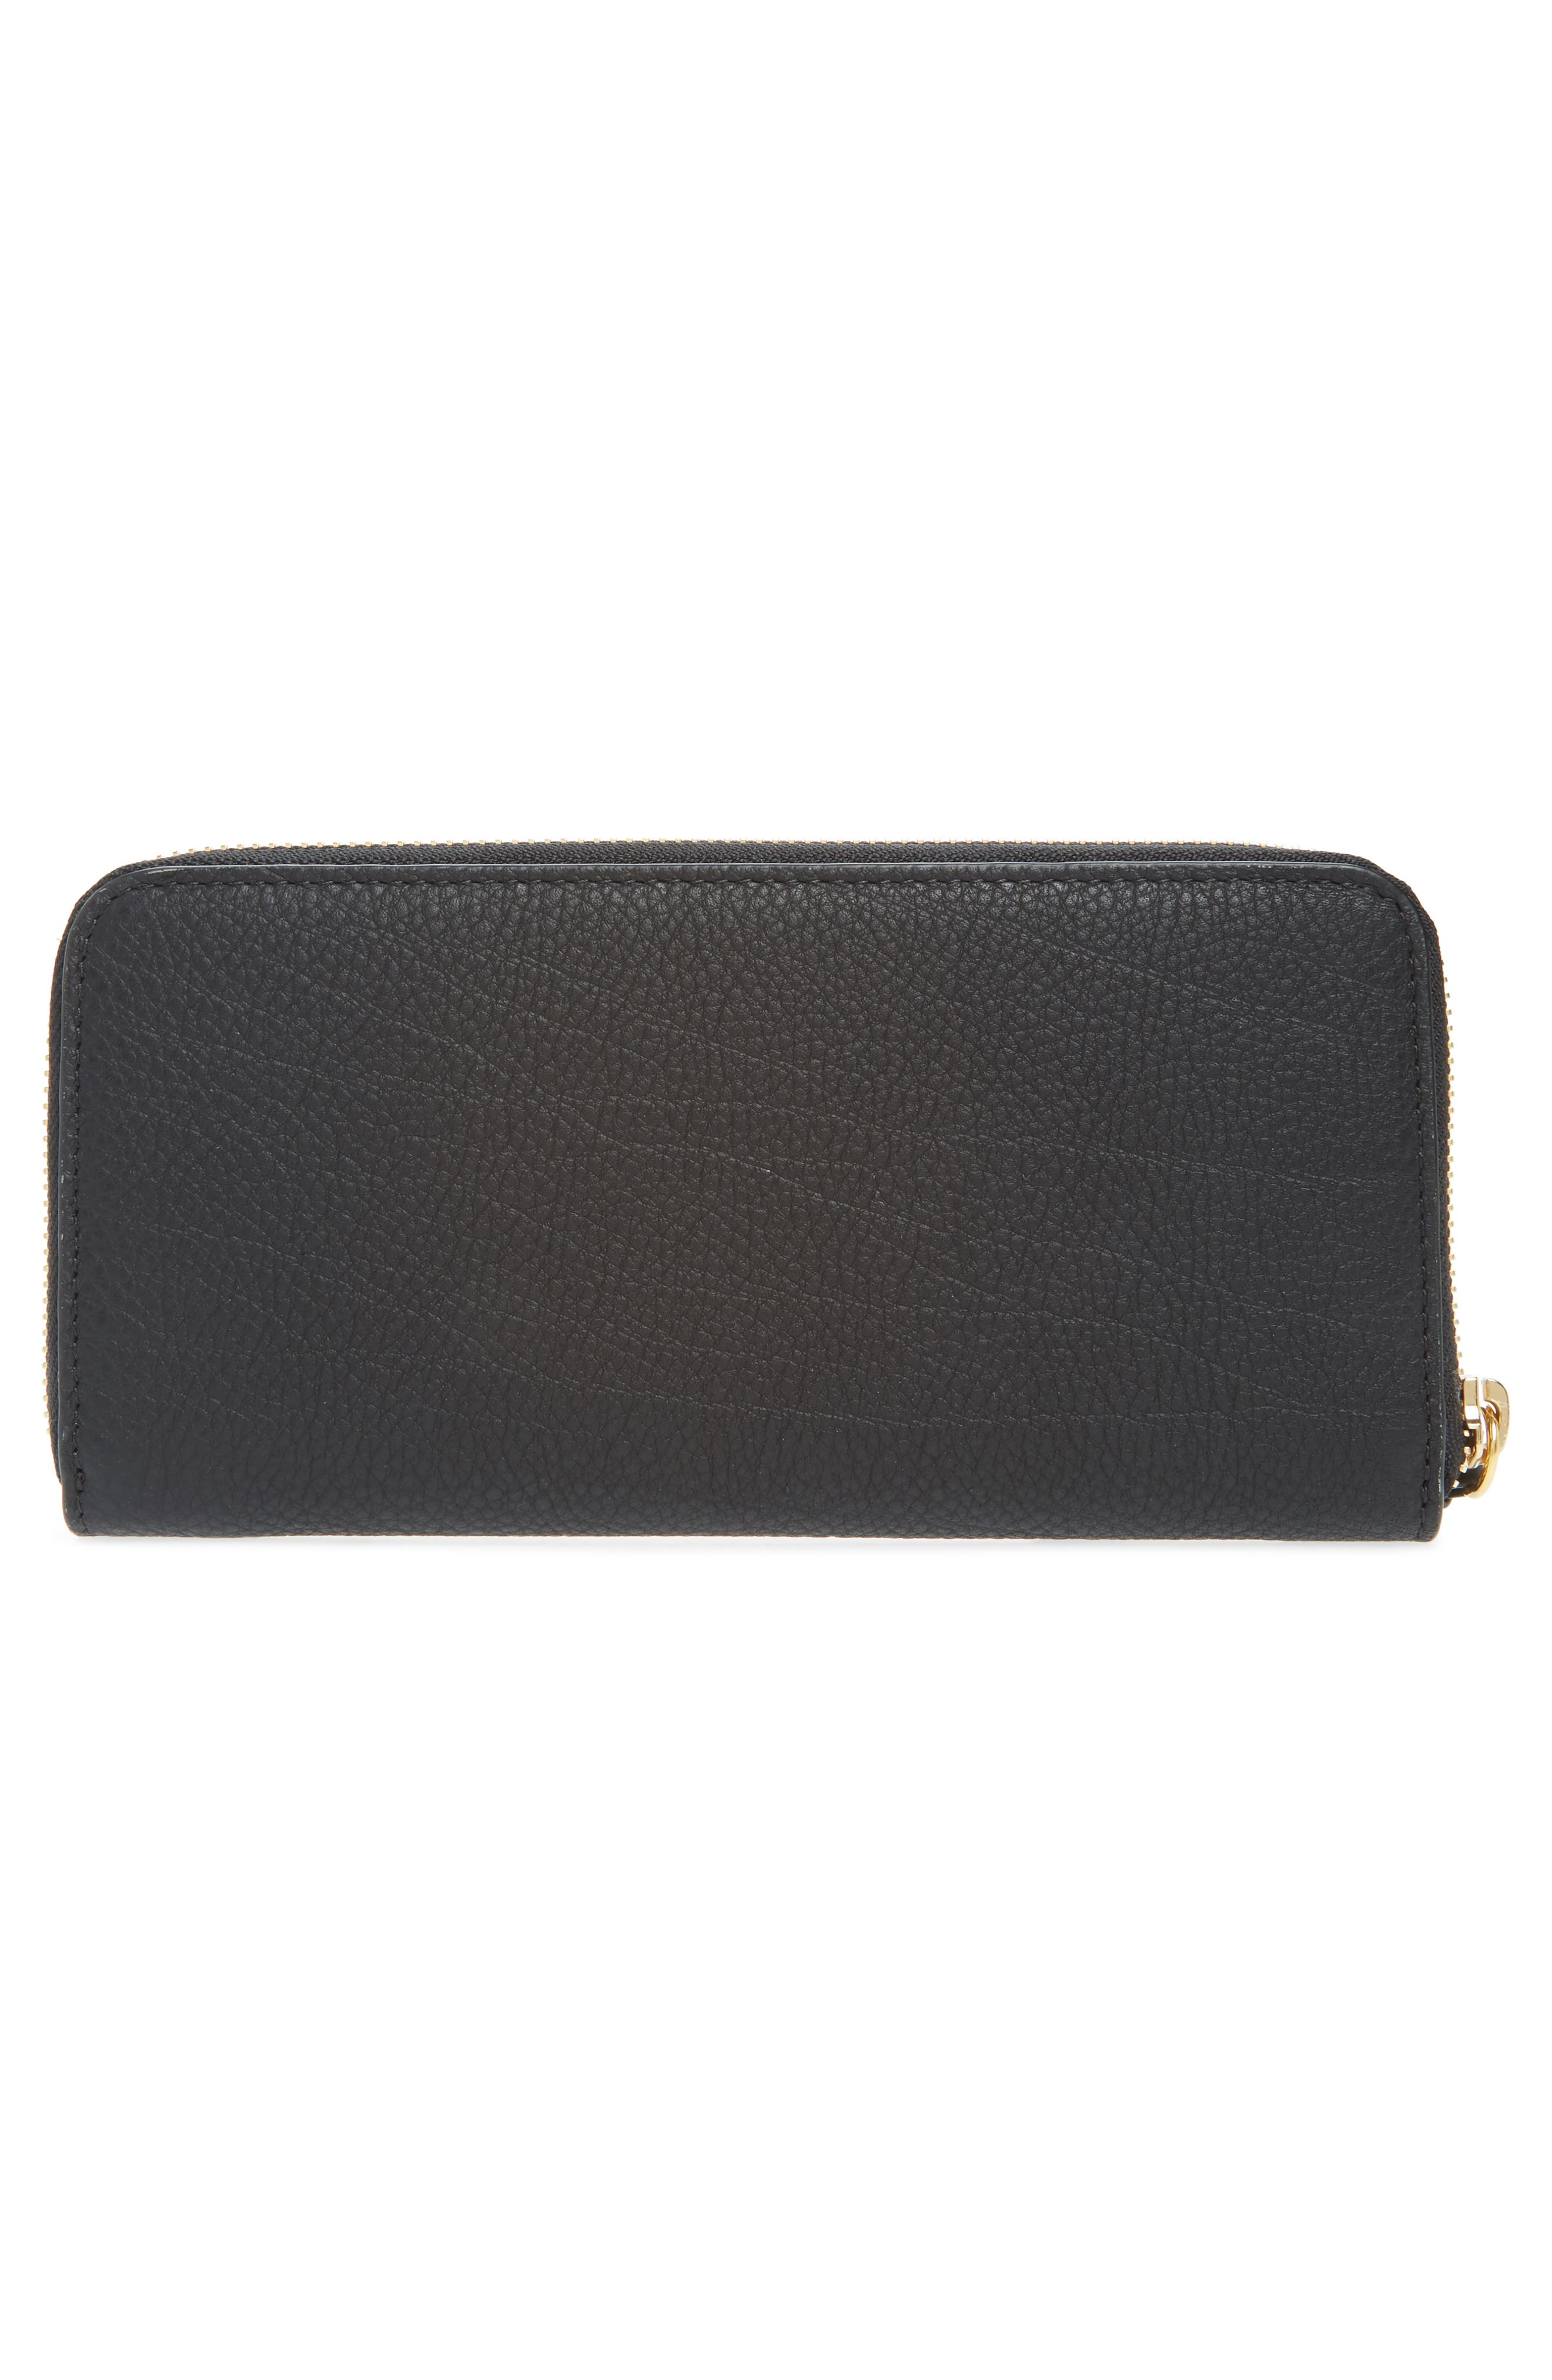 Messages Around Leather Wallet,                             Alternate thumbnail 3, color,                             001